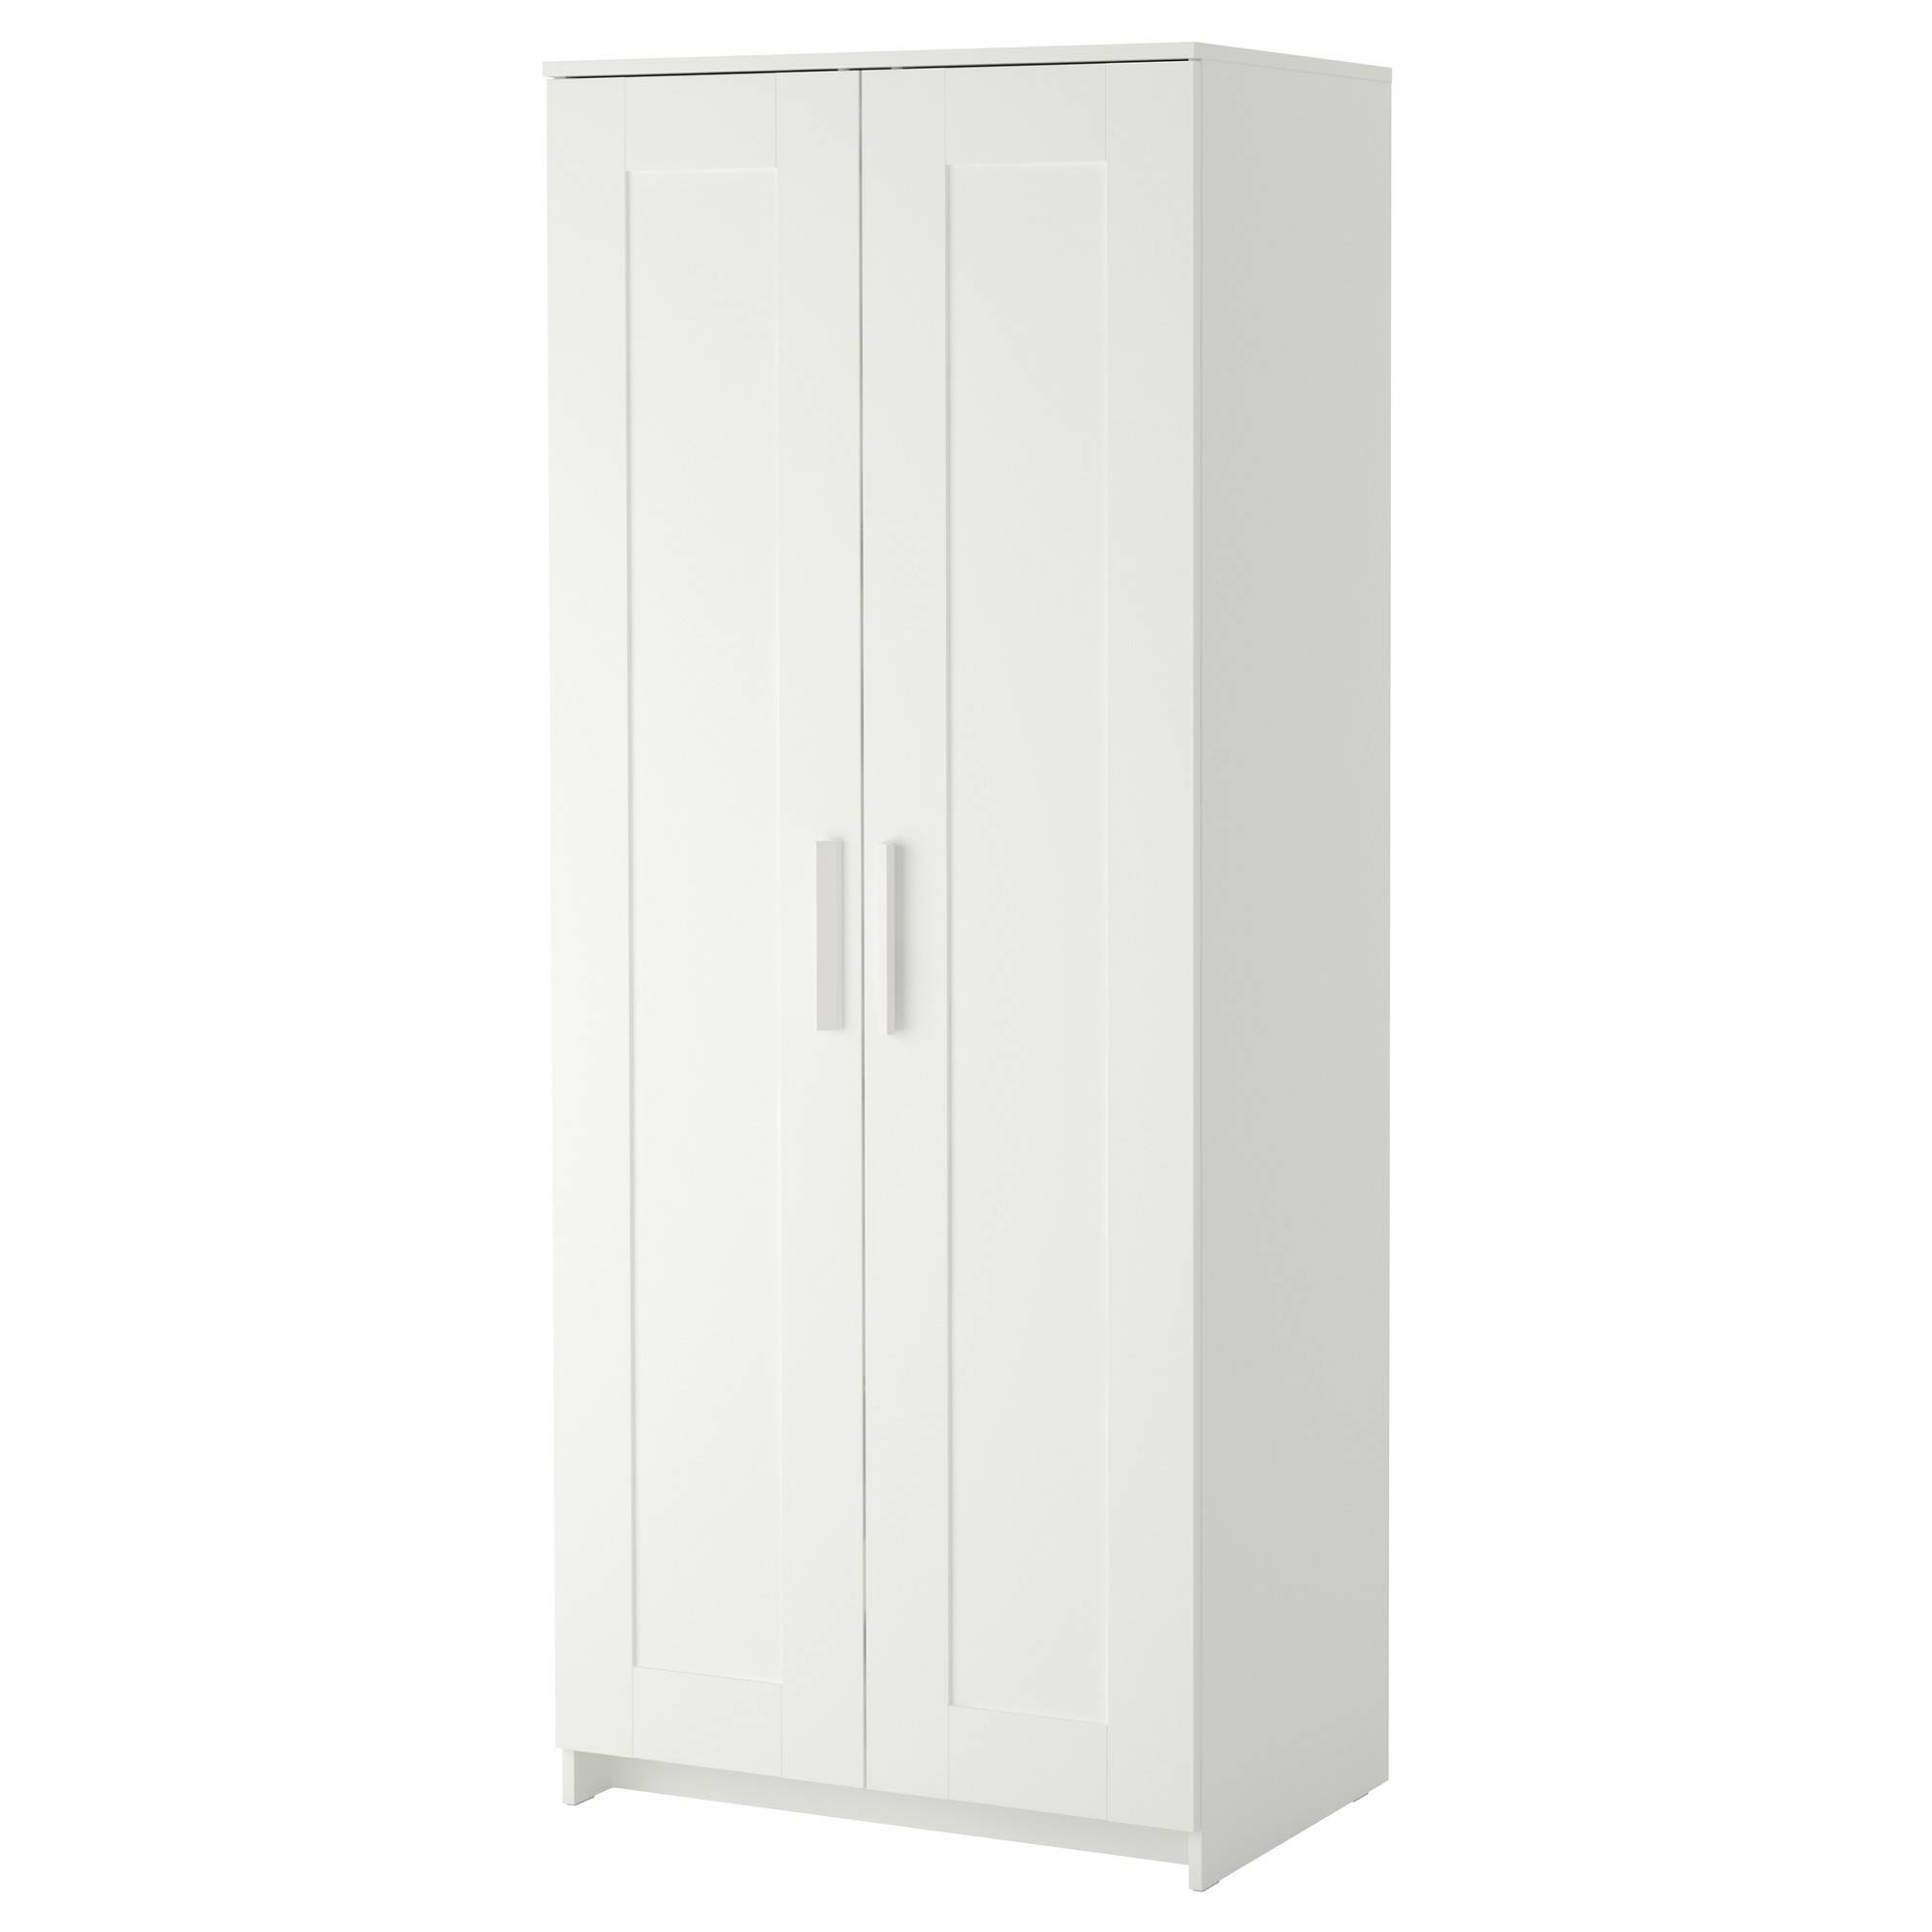 Free Standing Wardrobes | Ikea intended for Short Wardrobes (Image 4 of 15)